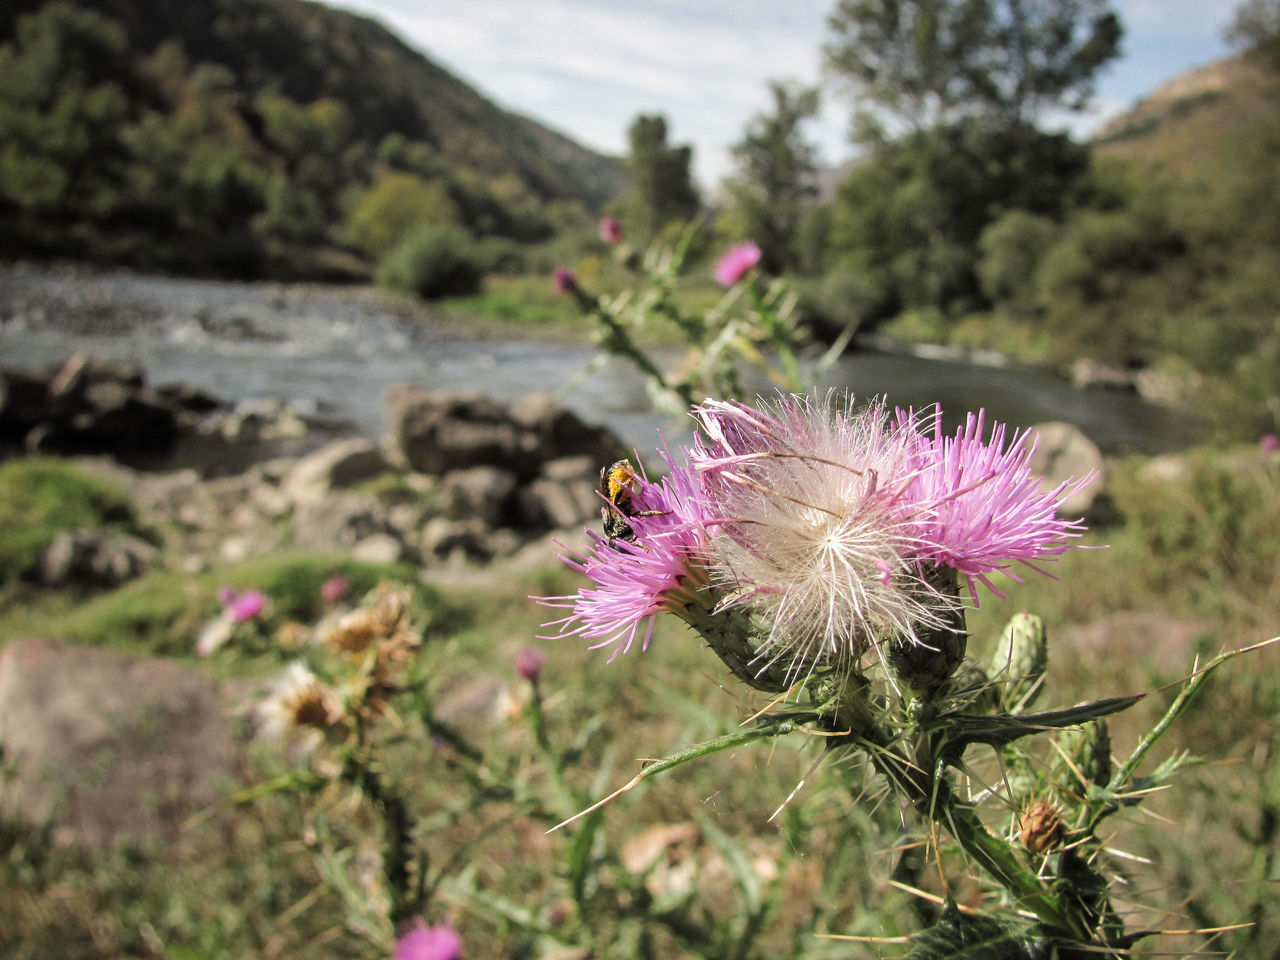 plant, freshness, vulnerability, flower, beauty in nature, flowering plant, fragility, growth, close-up, nature, focus on foreground, thistle, petal, inflorescence, flower head, no people, pink color, purple, day, field, outdoors, pollination